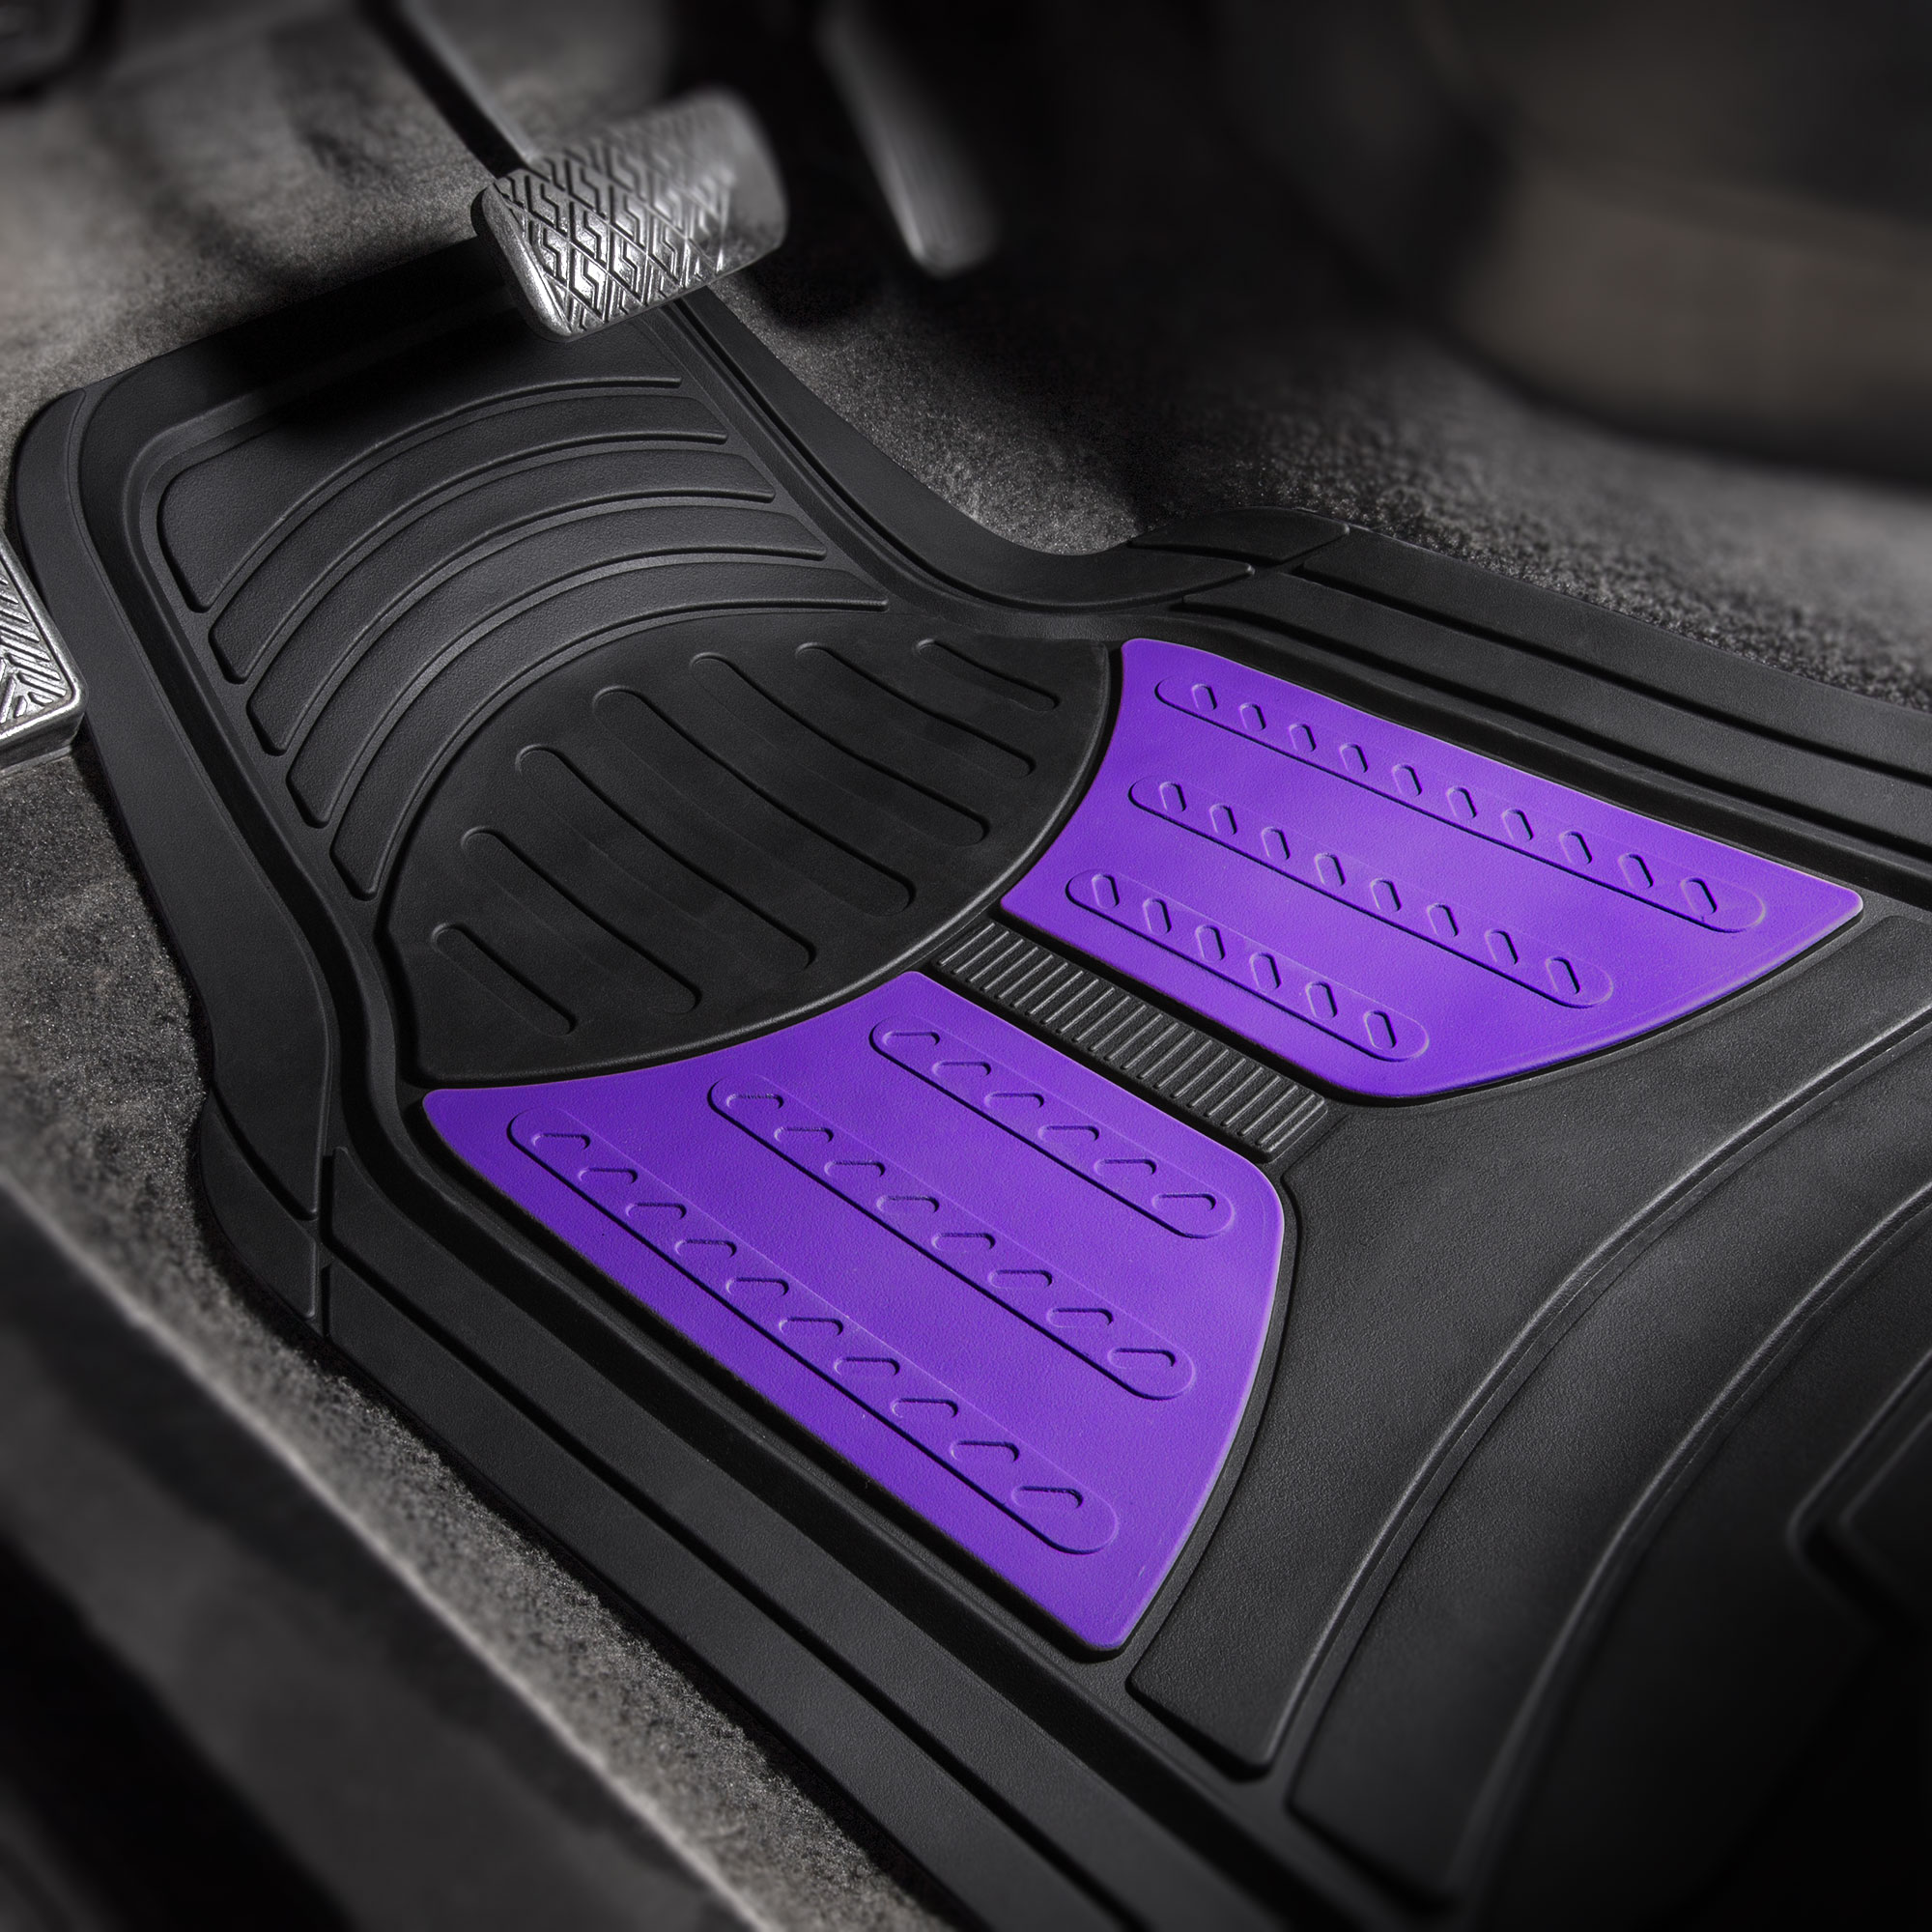 thumbnail 25 - Car Floor Mats for All Weather Rubber 2-Tone Design Heavy Duty - 4 Pc Set